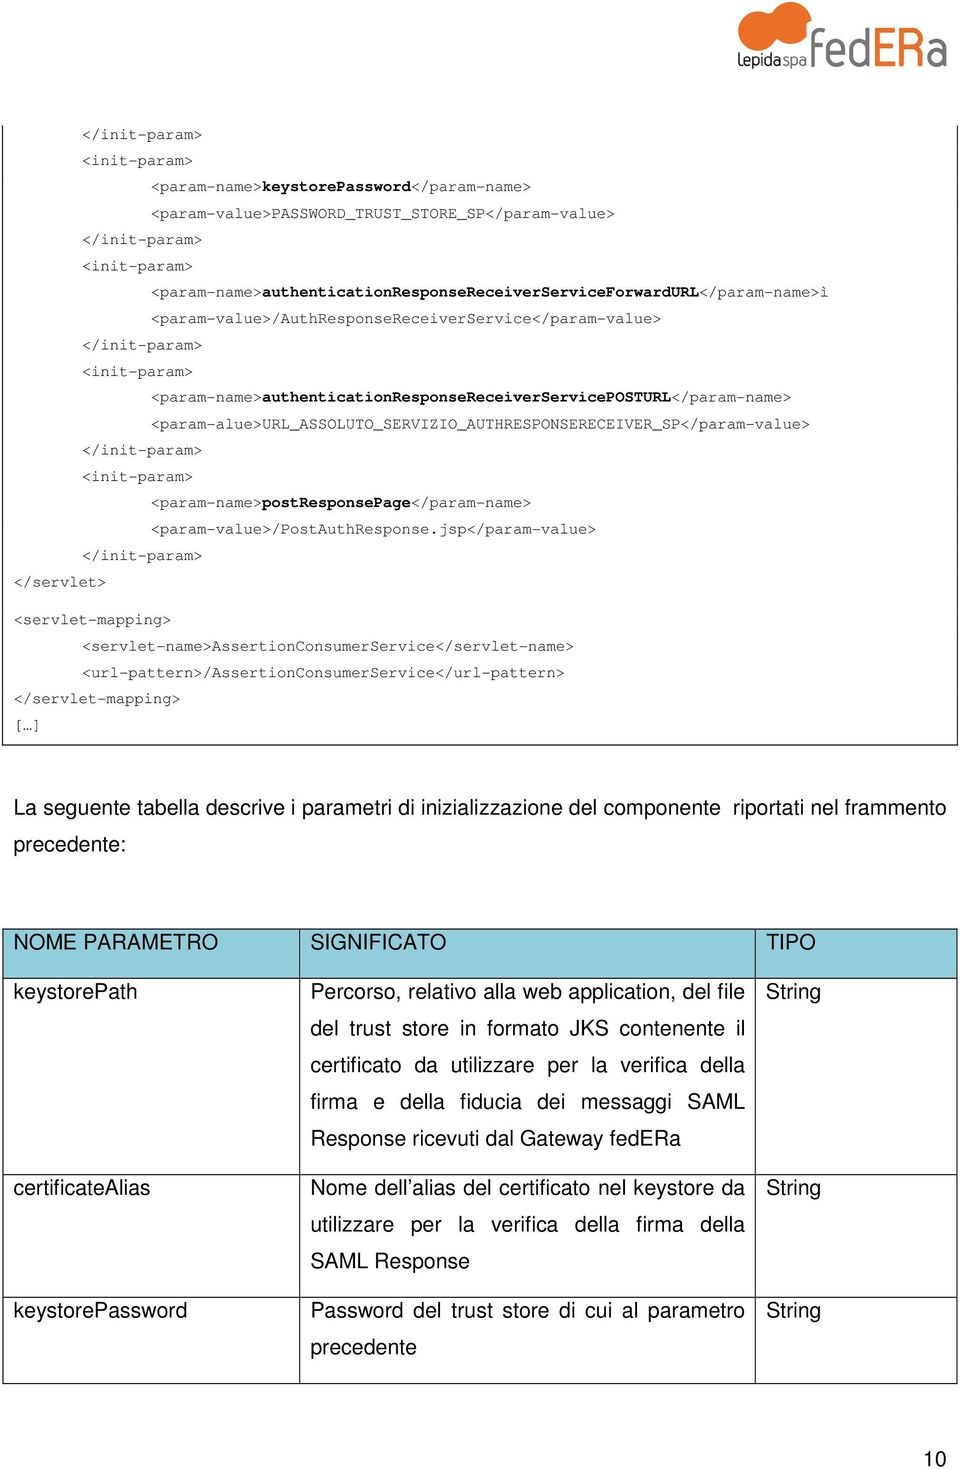 <param-name>authenticationresponsereceiverserviceposturl</param-name> <param-alue>url_assoluto_servizio_authresponsereceiver_sp</param-value> </init-param> <init-param>